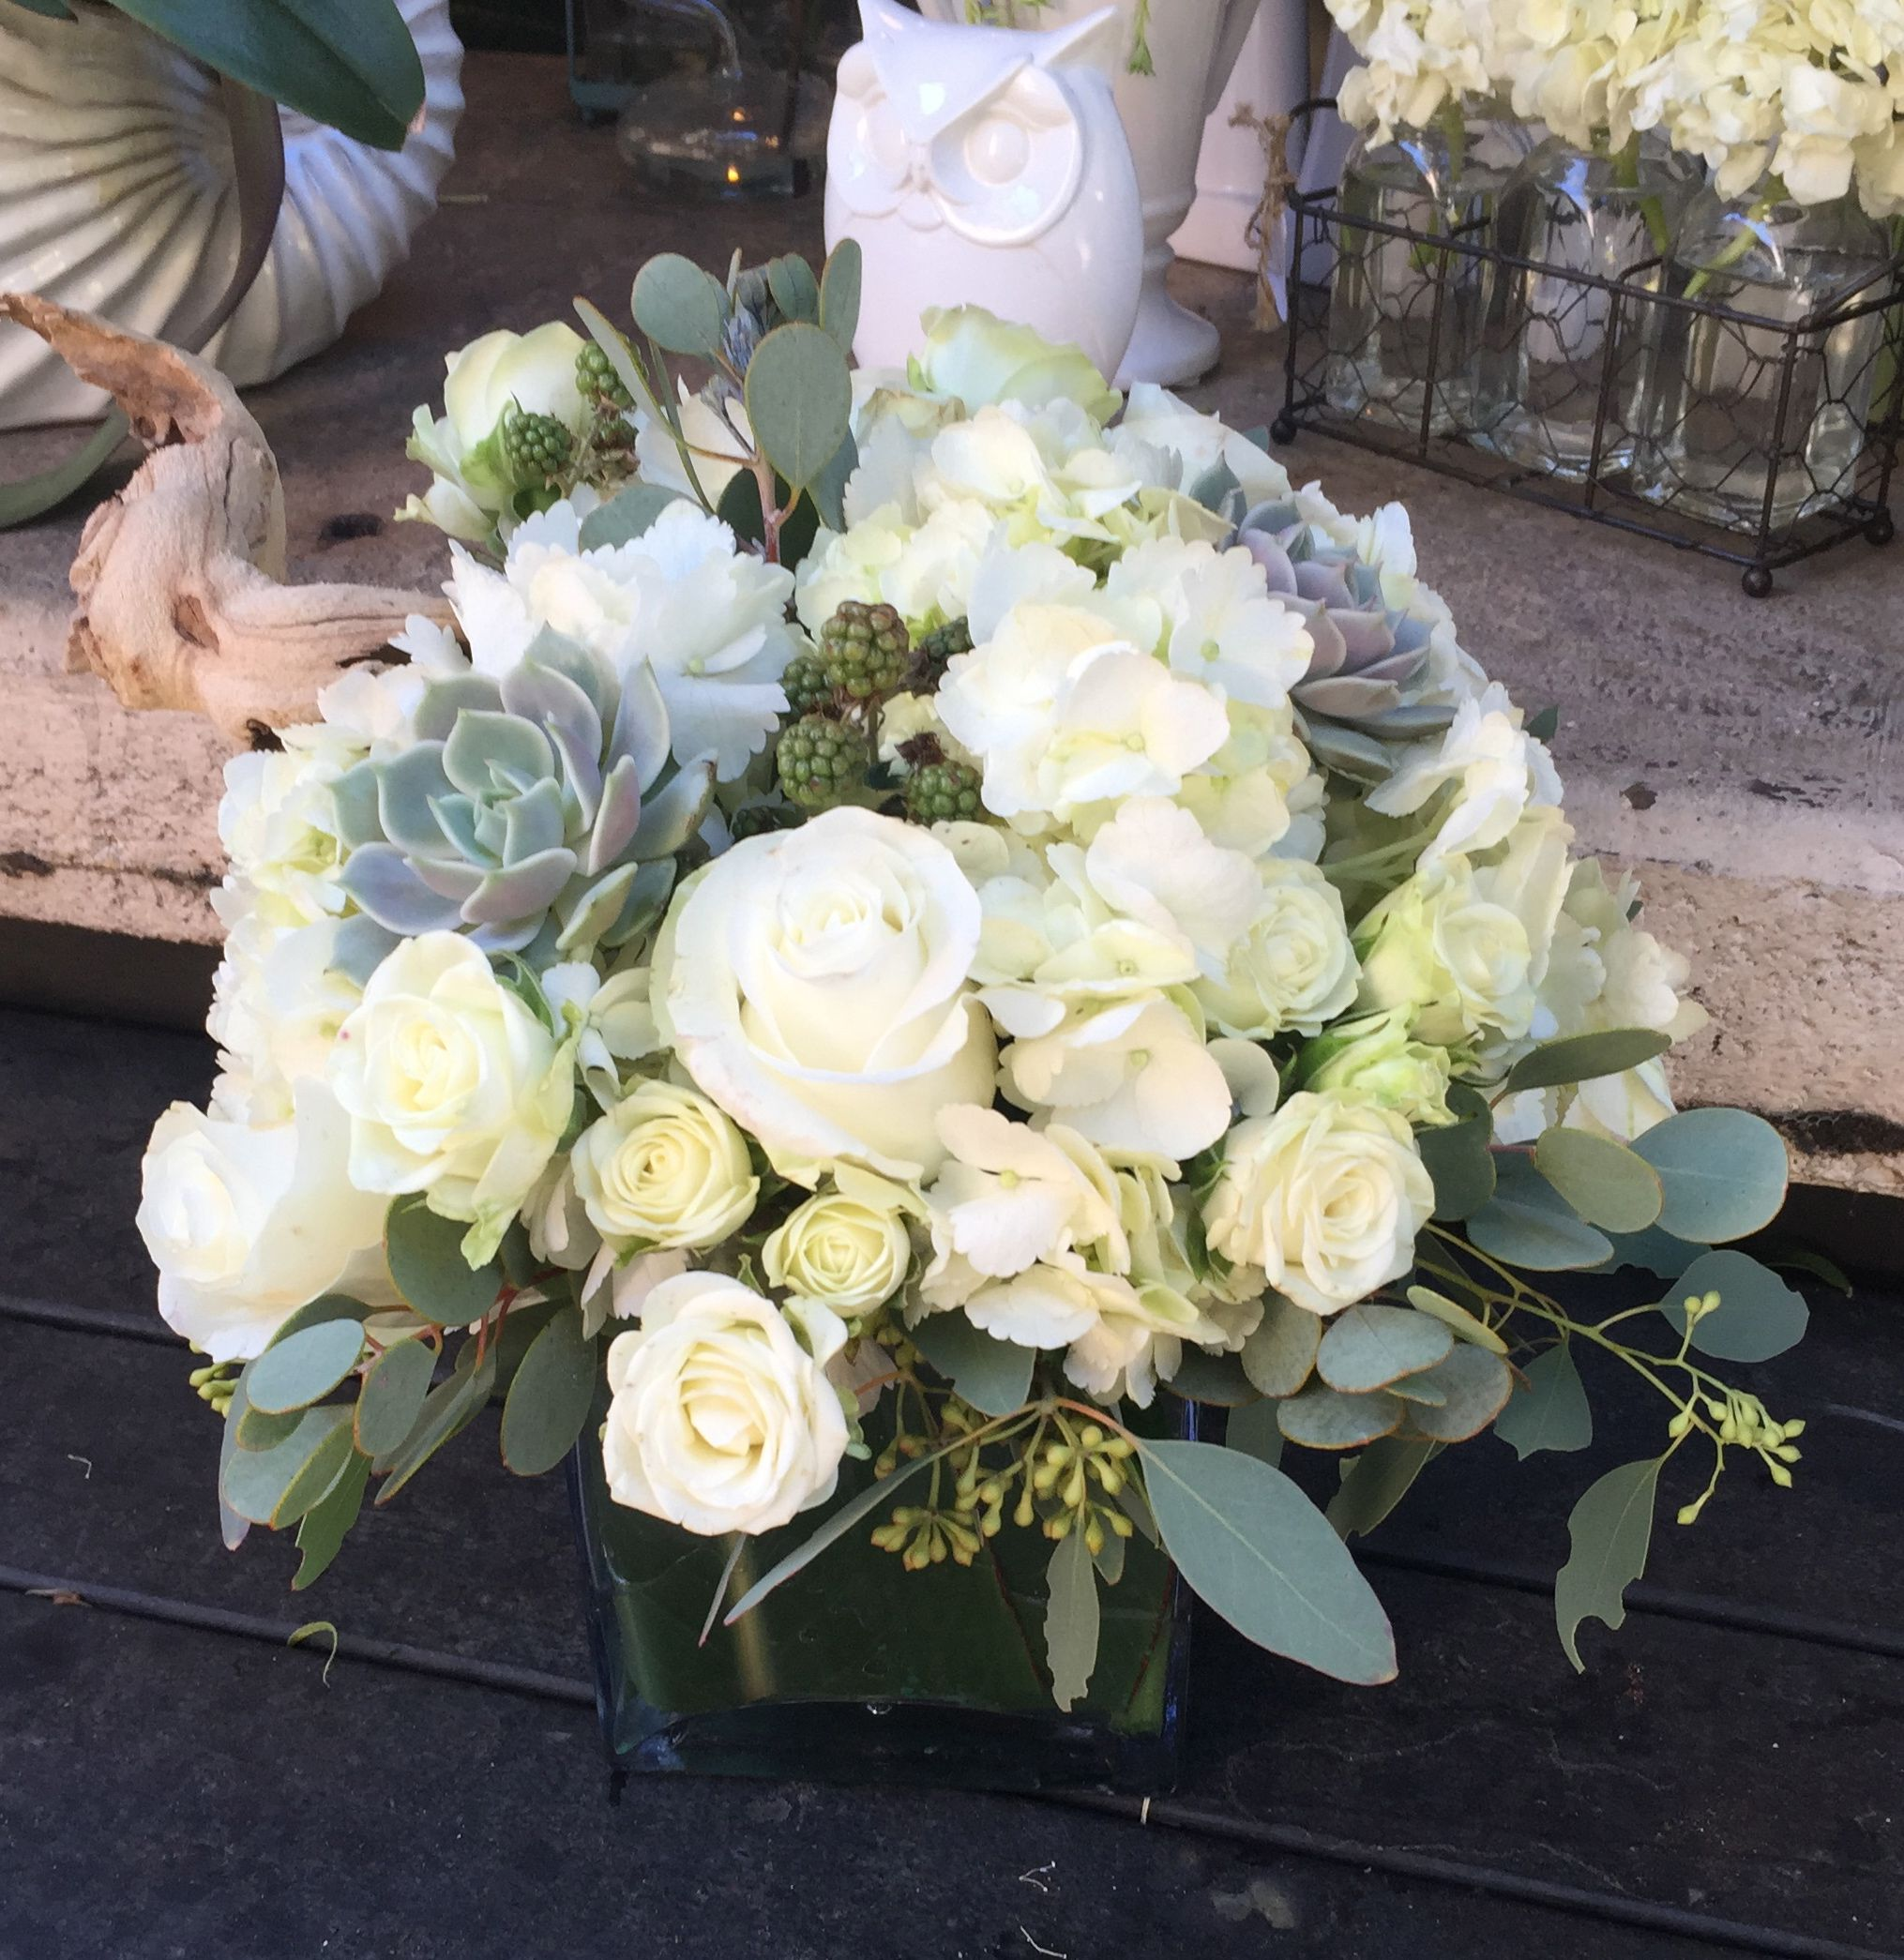 White Wedding Gown Hydrangea: Centerpieces With Succulents, White Hydrangeas And White